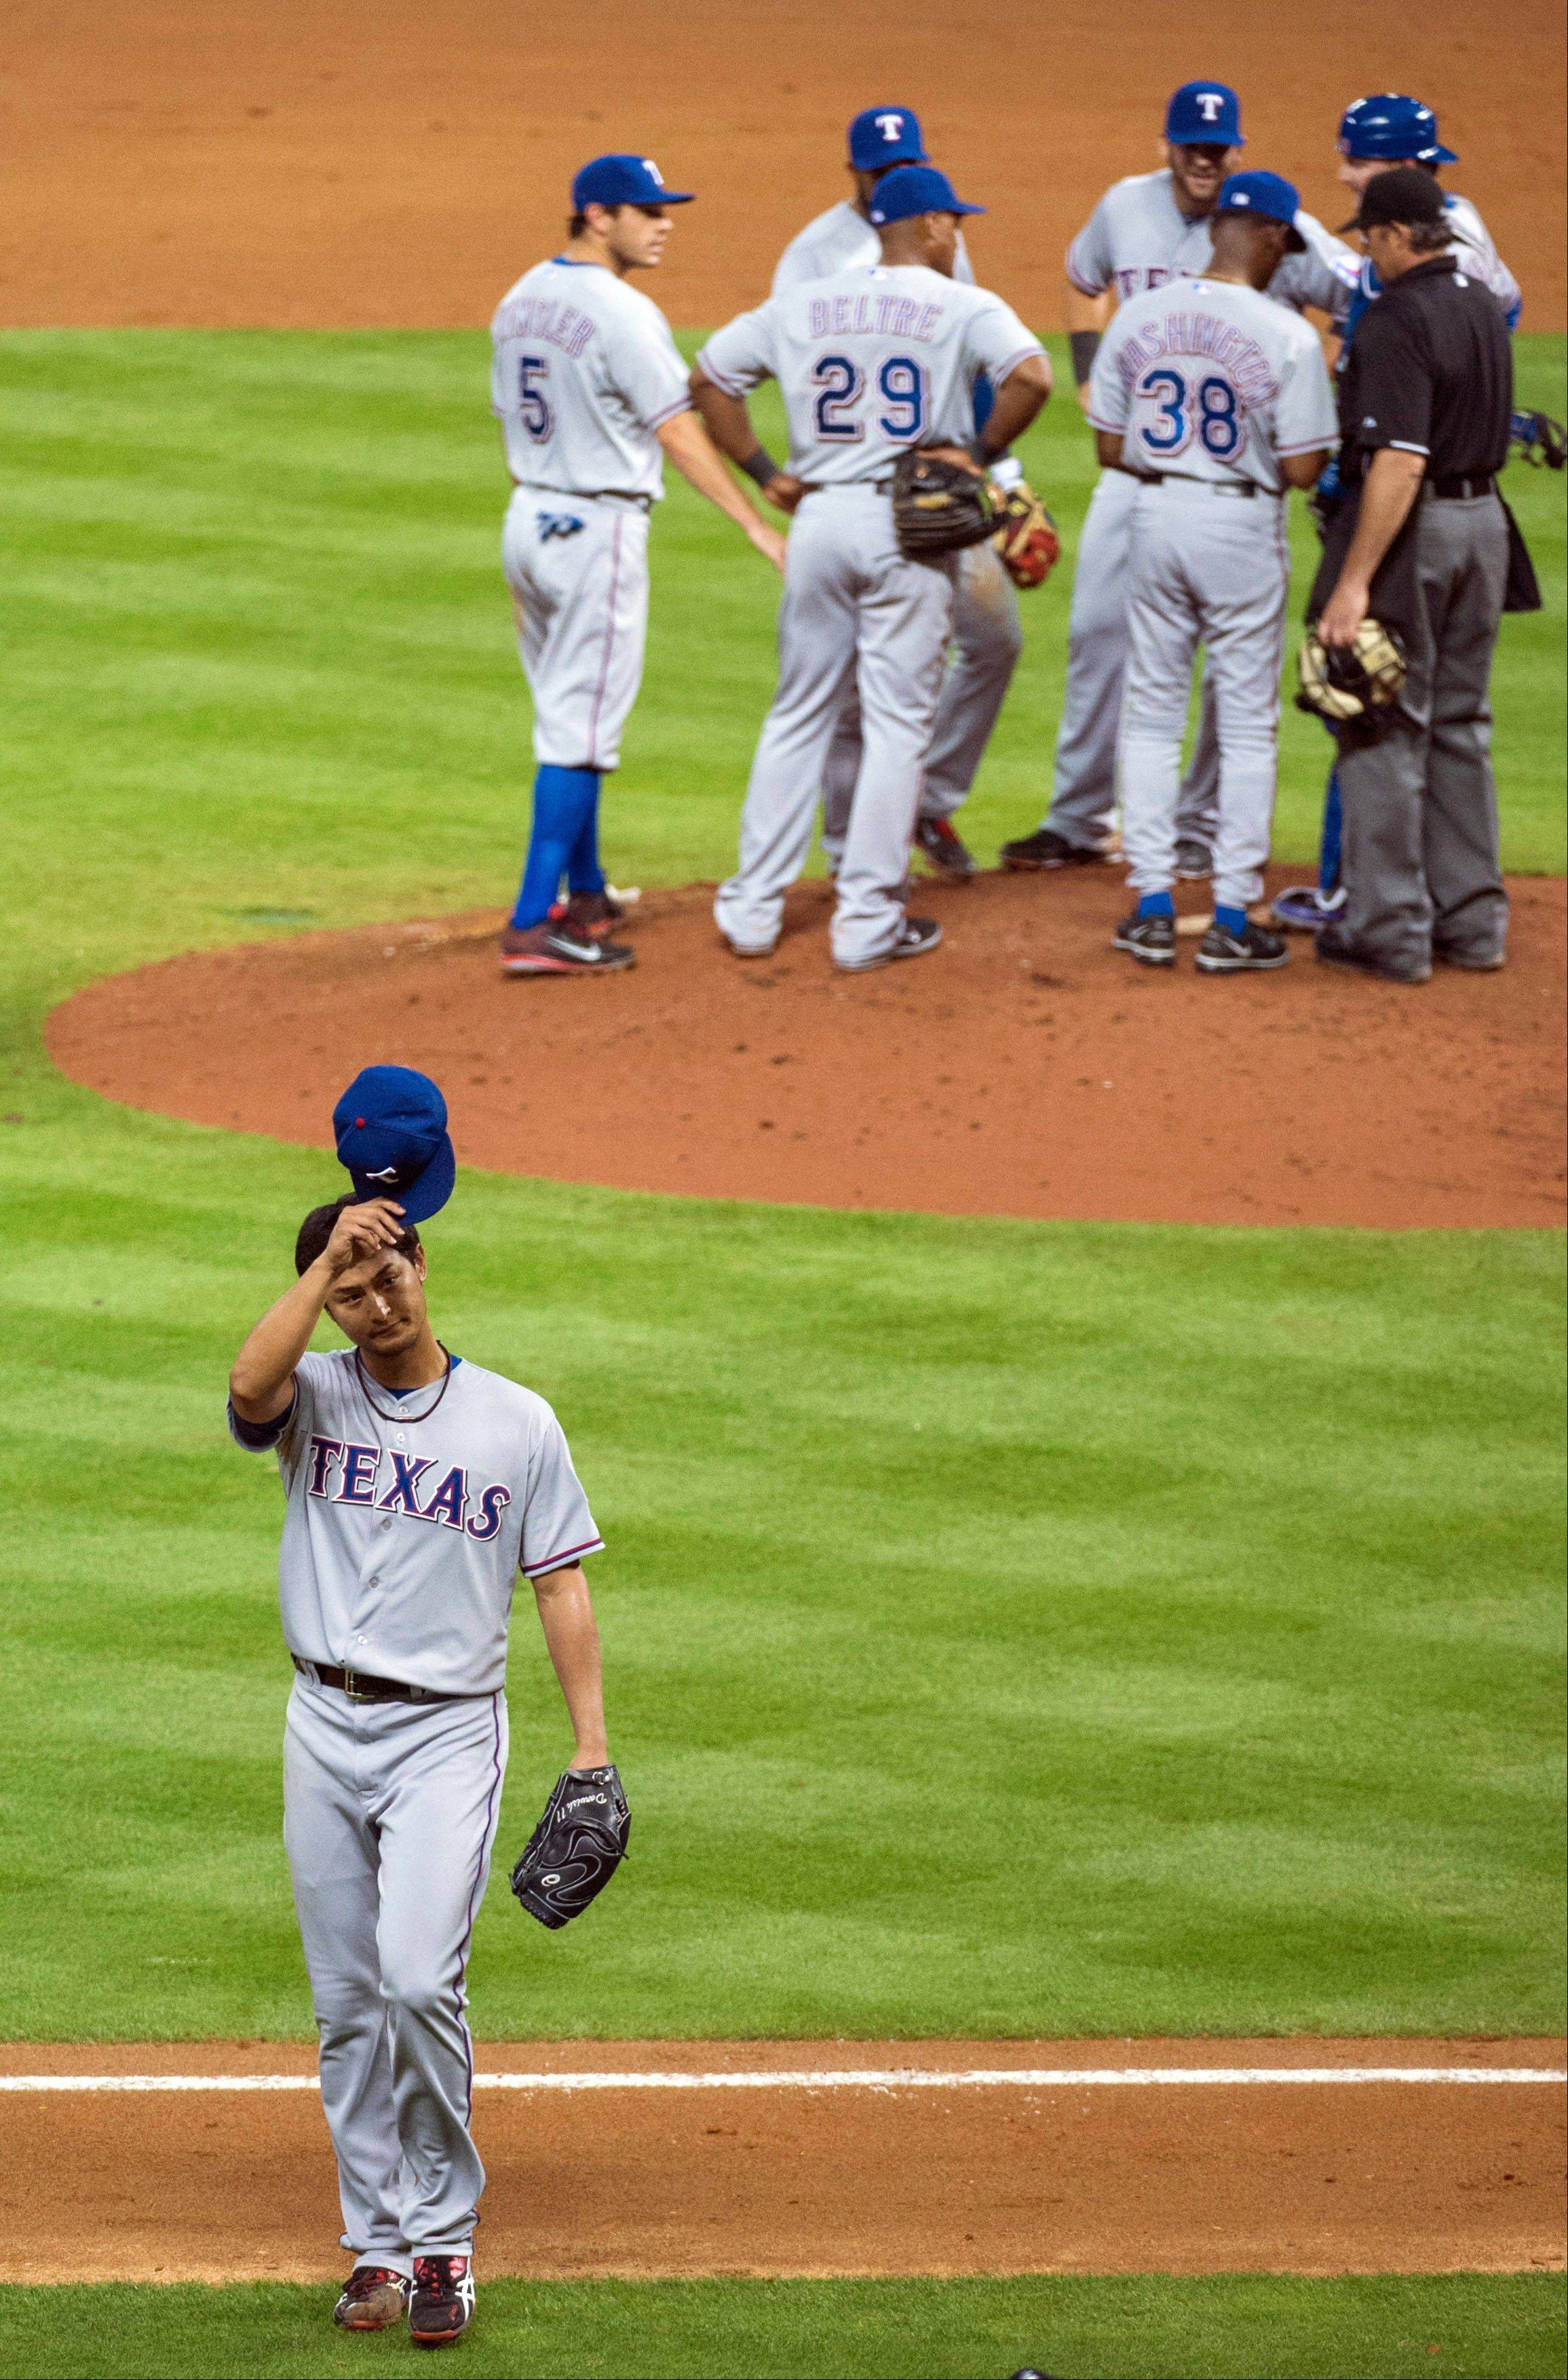 Texas Rangers starting pitcher Yu Darvish tips his cap to the crowd as he leaves the game after surrendering a hit in the bottom of the ninth inning against the Houston Astros at Minute Maid Park on Tuesday, April 2, 2013, in Houston. Darvish pitched nine and two-thirds perfect innings before giving up a hit to Astros' Marwin Gonzalez in the Rangers' 7-0 win. (AP Photo/Houston Chronicle, Smiley N. Pool)